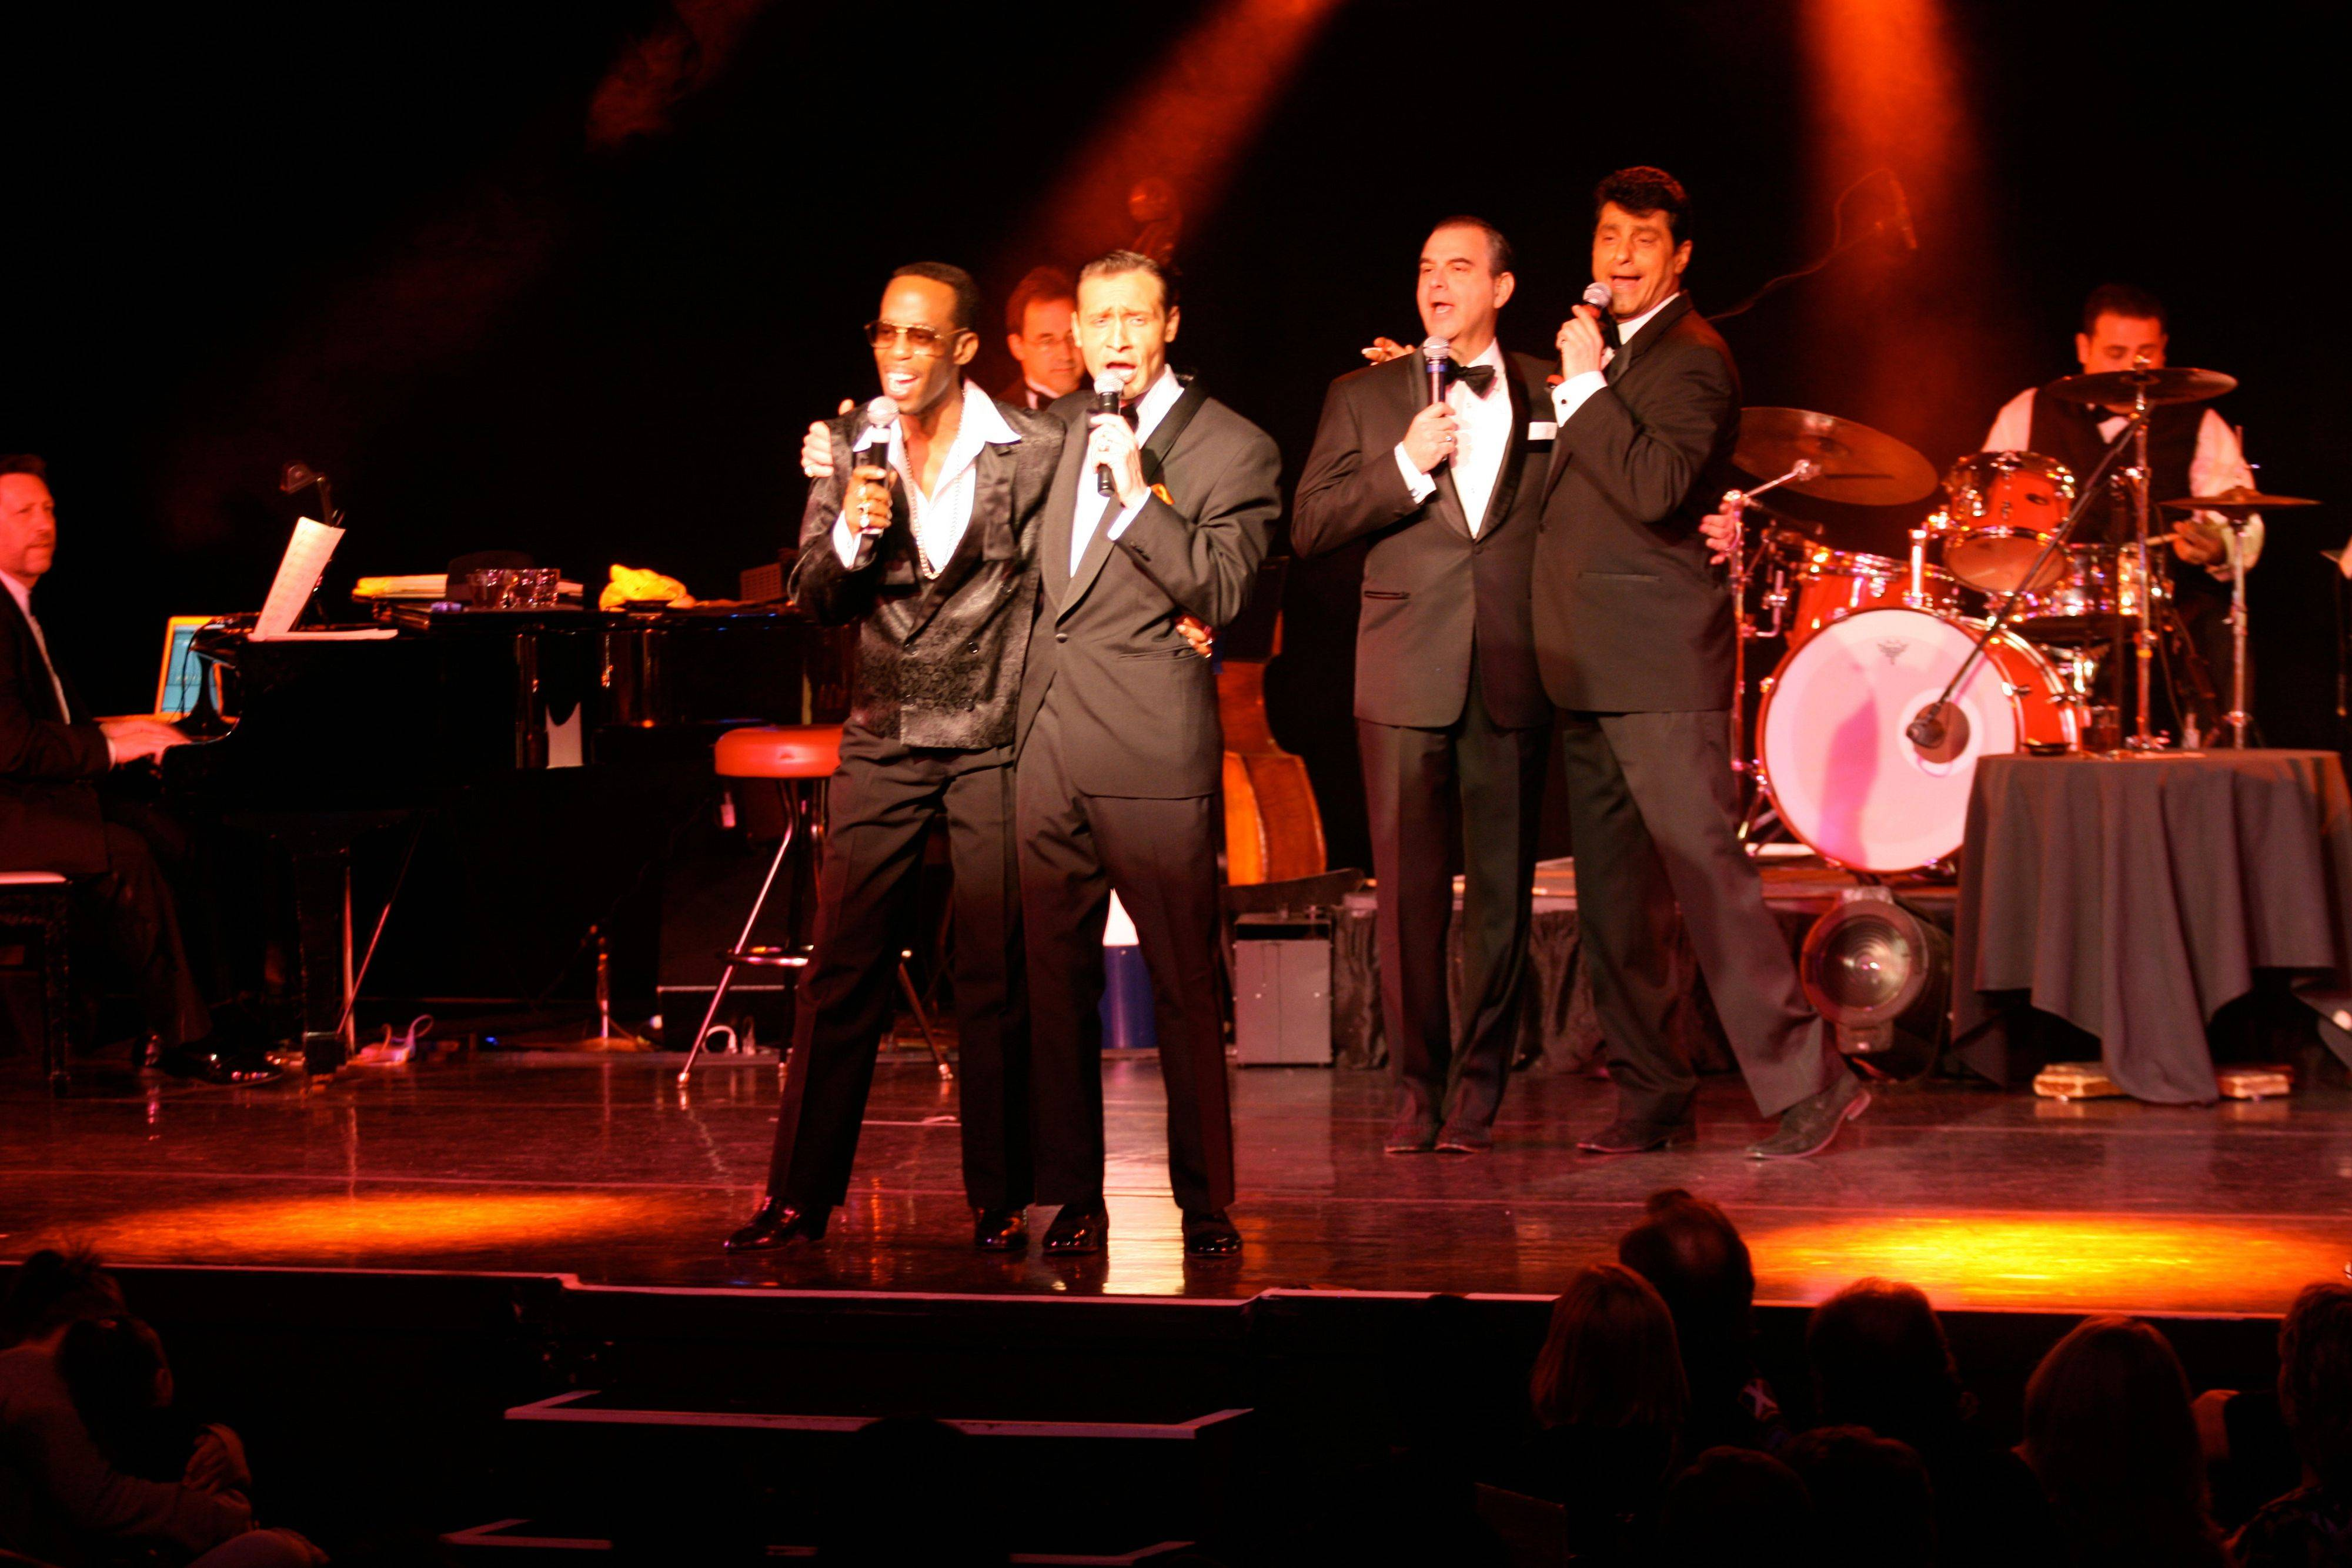 Sandy Hackett's Rat Pack Show helps usher in the New Year at the Paramount Theatre in Aurora.